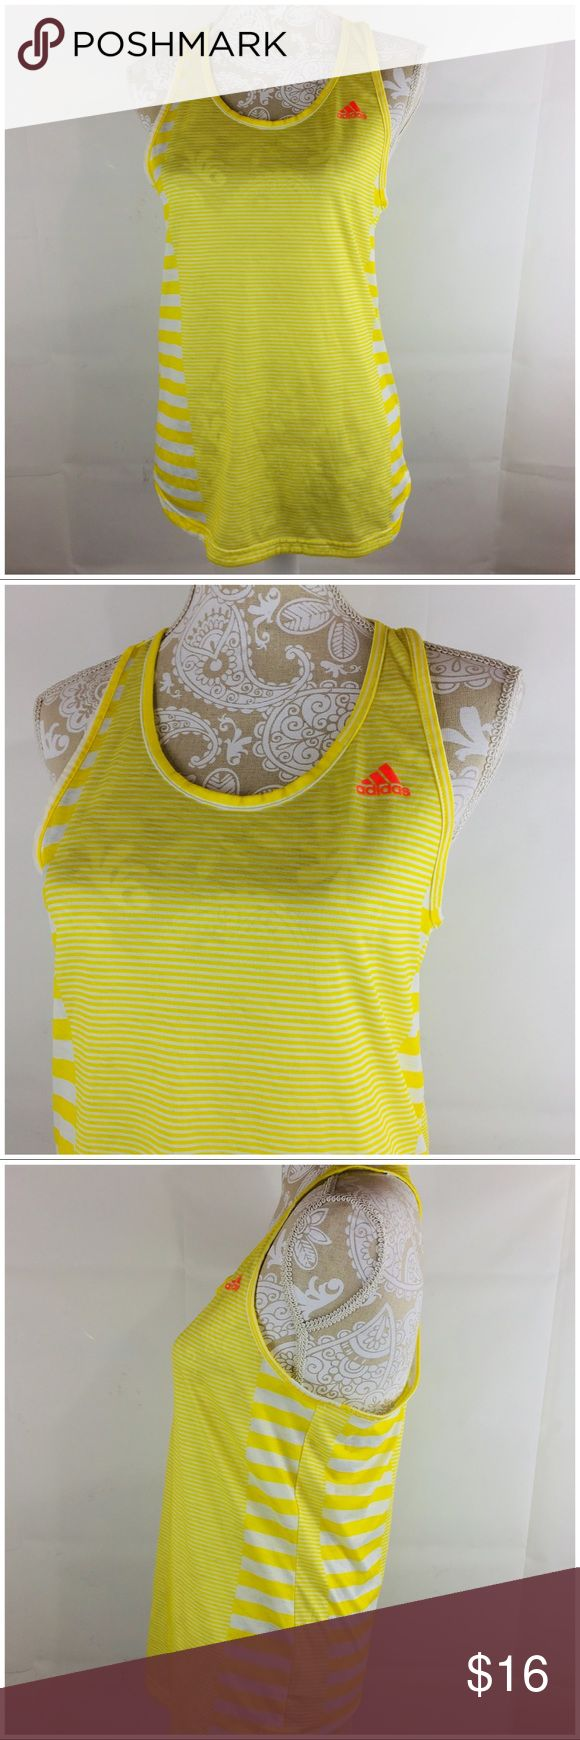 Adidas Climalite Yellow Tank Top Women's Small Adidas Climalite tank top women's size small yellow, striped, lightweight, sheer good pre-owned condition approximate measurements: width underarm to underarm 16 inches length 25 inches adidas Tops Tank Tops